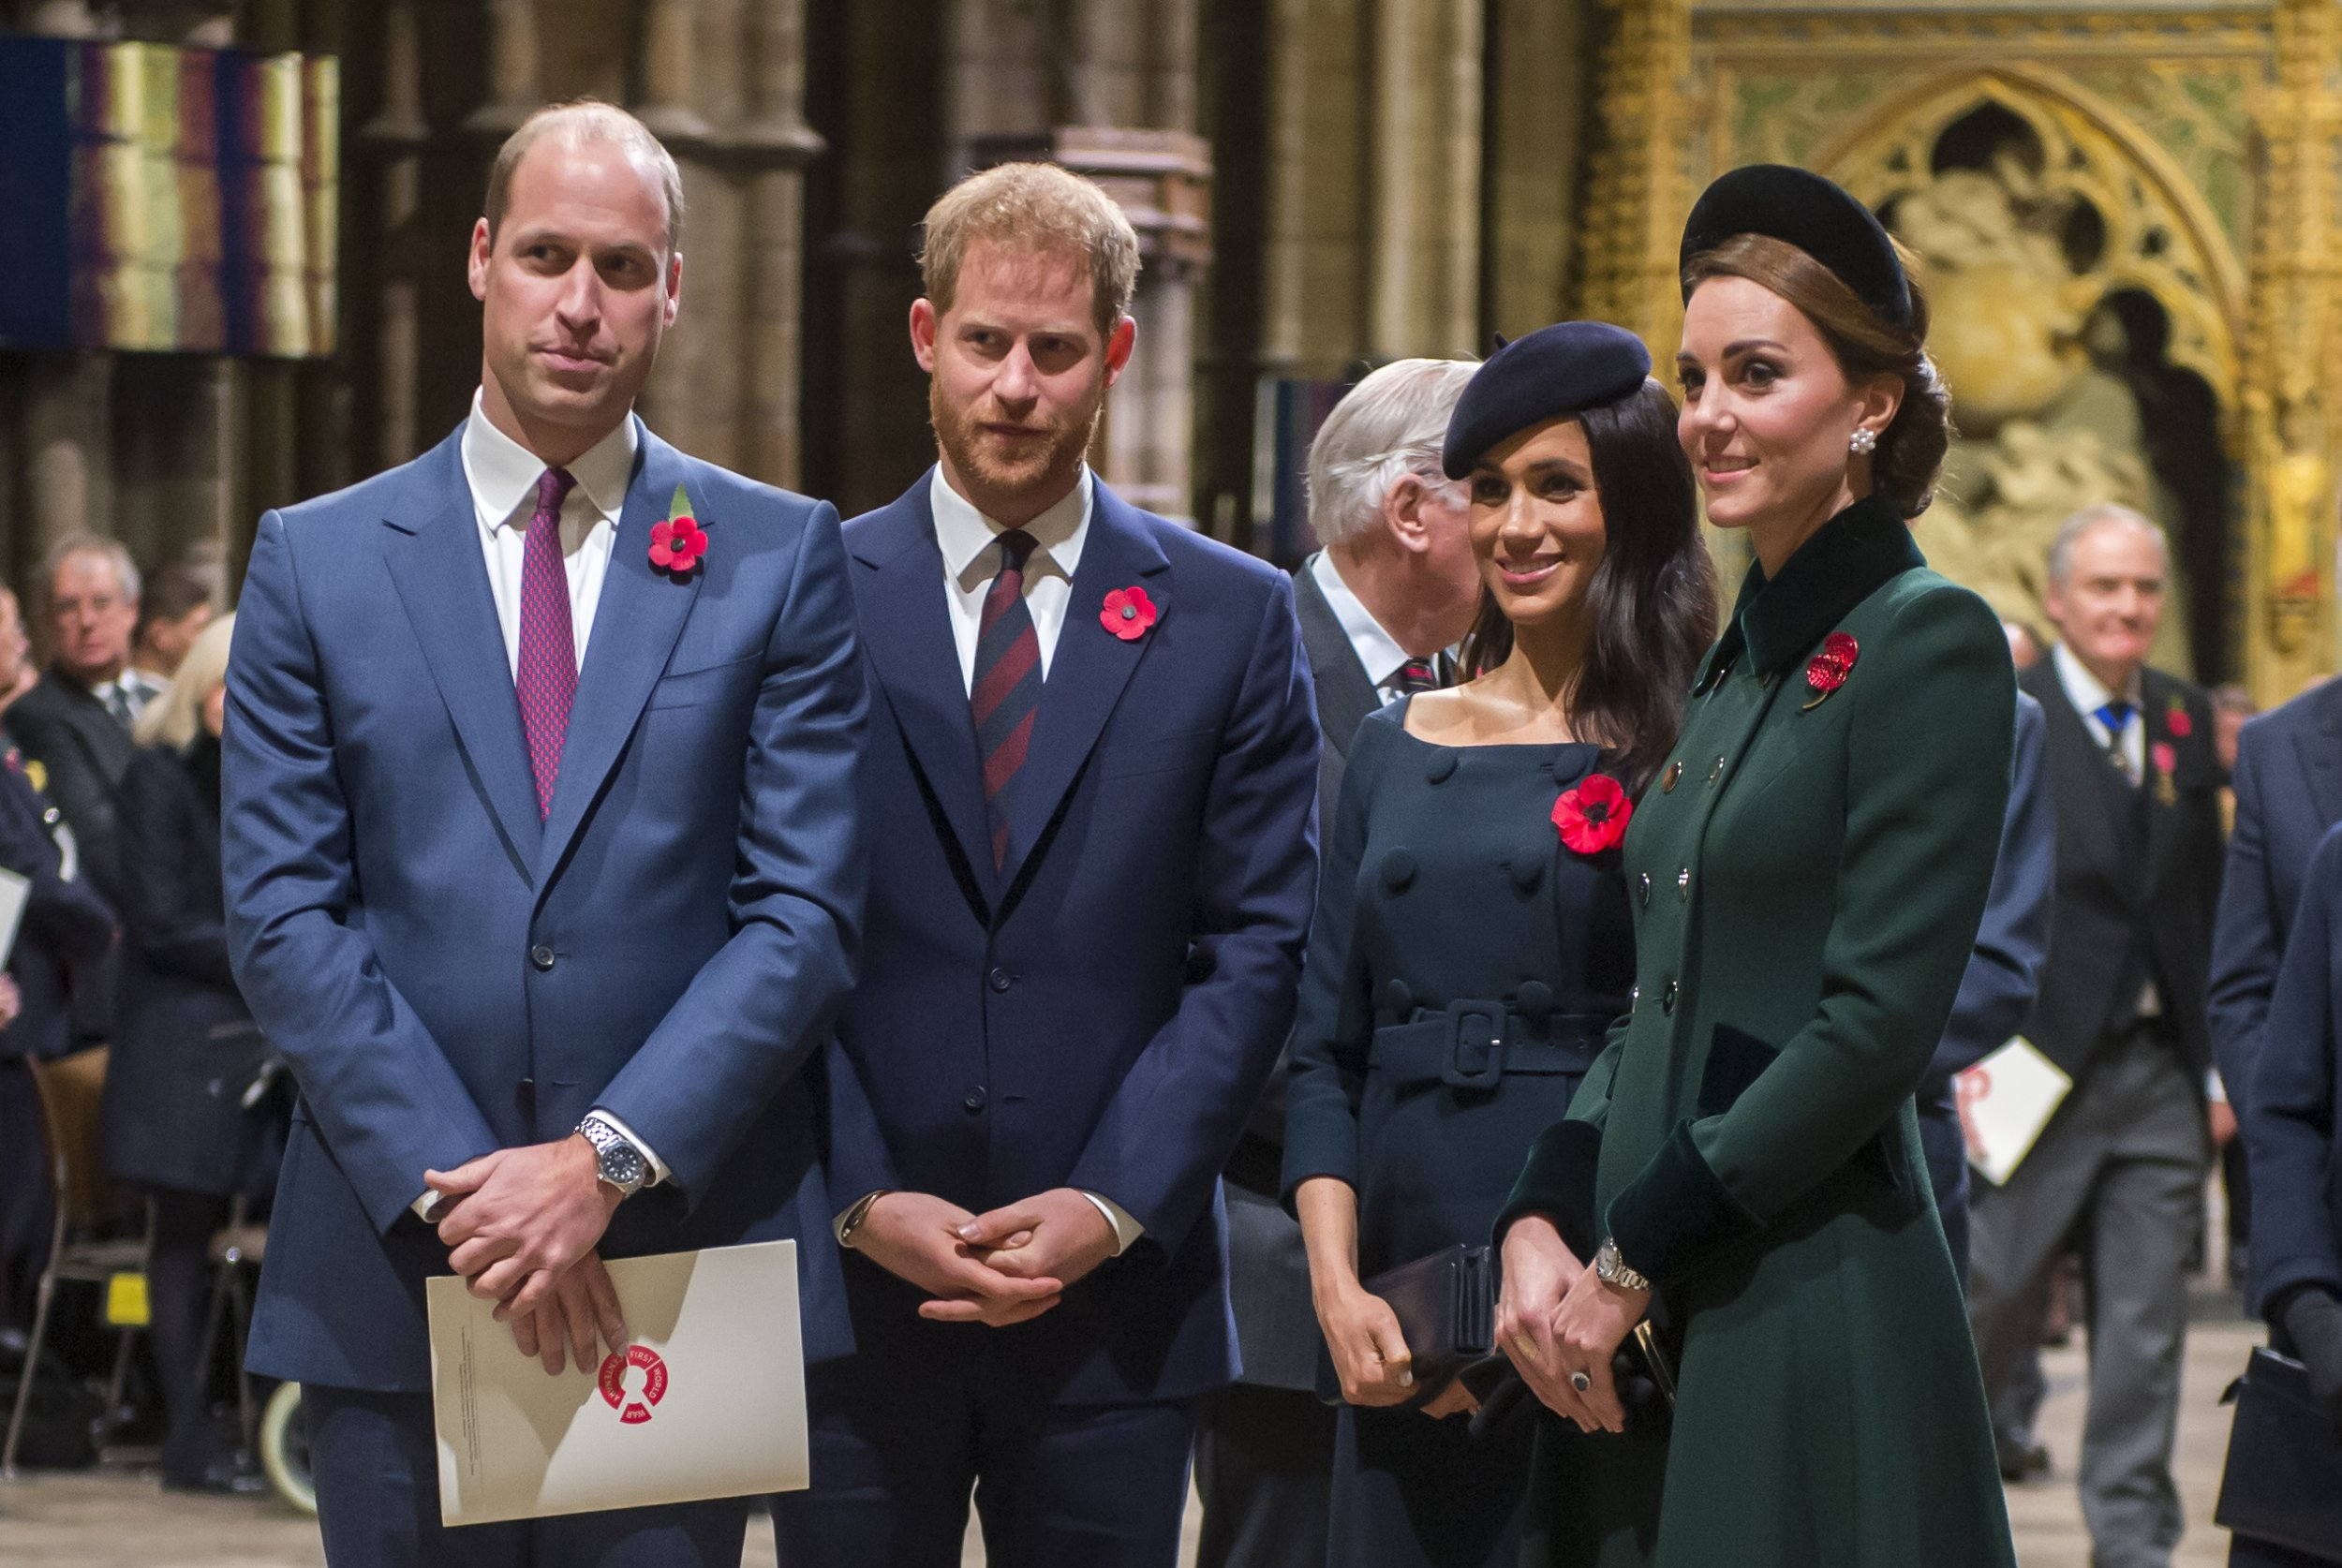 LONDON, ENGLAND - NOVEMBER 11: Prince William, Duke of Cambridge and Catherine, Duchess of Cambridge, Prince Harry, Duke of Sussex and Meghan, Duchess of Sussex attend a service marking the centenary of WW1 armistice at Westminster Abbey on November 11, 2018 in London, England. The armistice ending the First World War between the Allies and Germany was signed at Compi??gne, France on eleventh hour of the eleventh day of the eleventh month - 11am on the 11th November 1918. This day is commemorated as Remembrance Day with special attention being paid for this year?s centenary. (Photo by Paul Grover- WPA Pool/Getty Images)